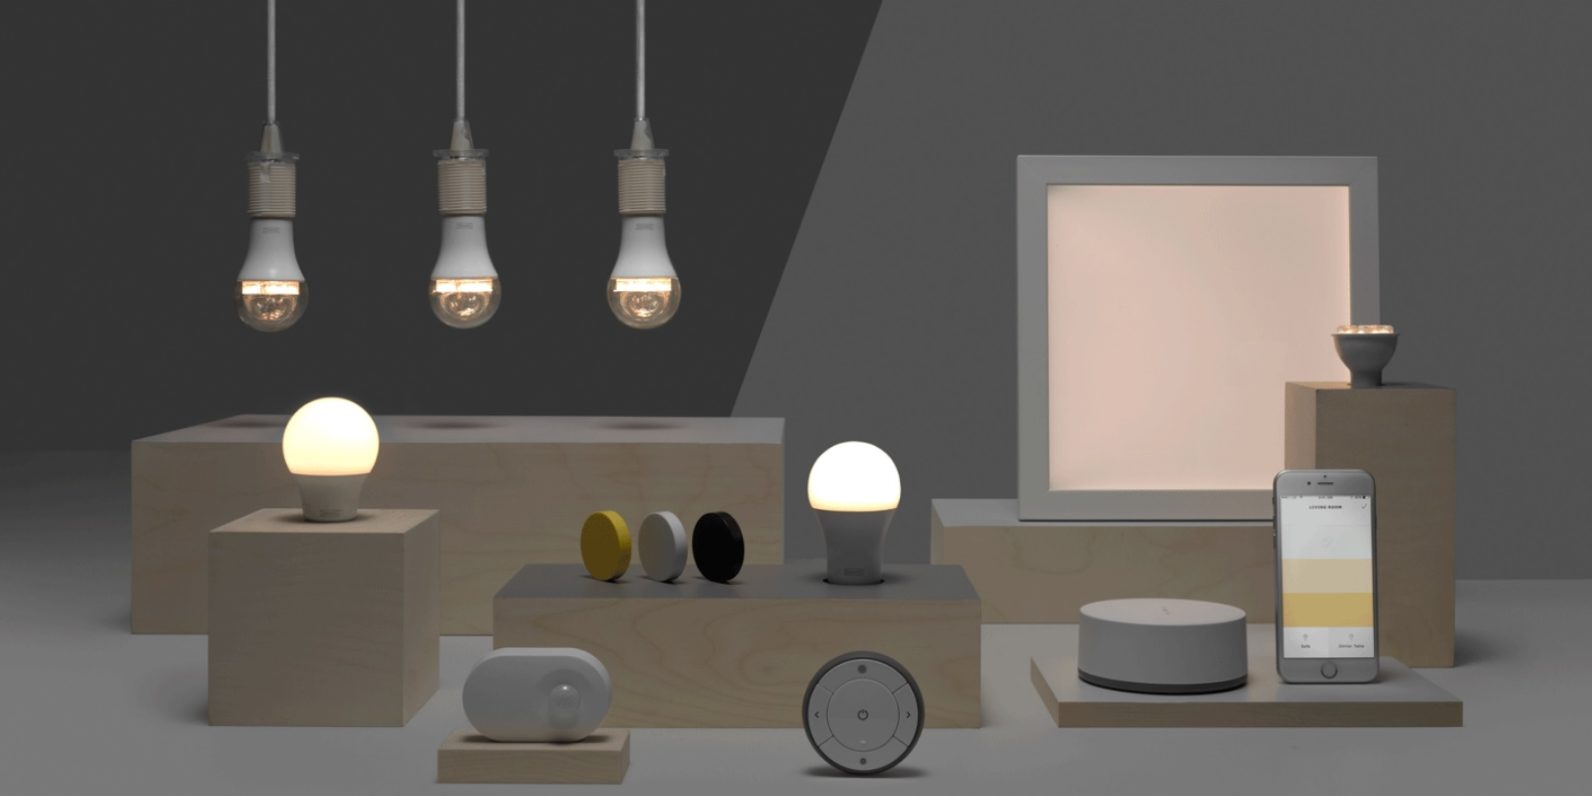 Ikea Launches Homekit Support For Tr 229 Dfri Smart Lighting